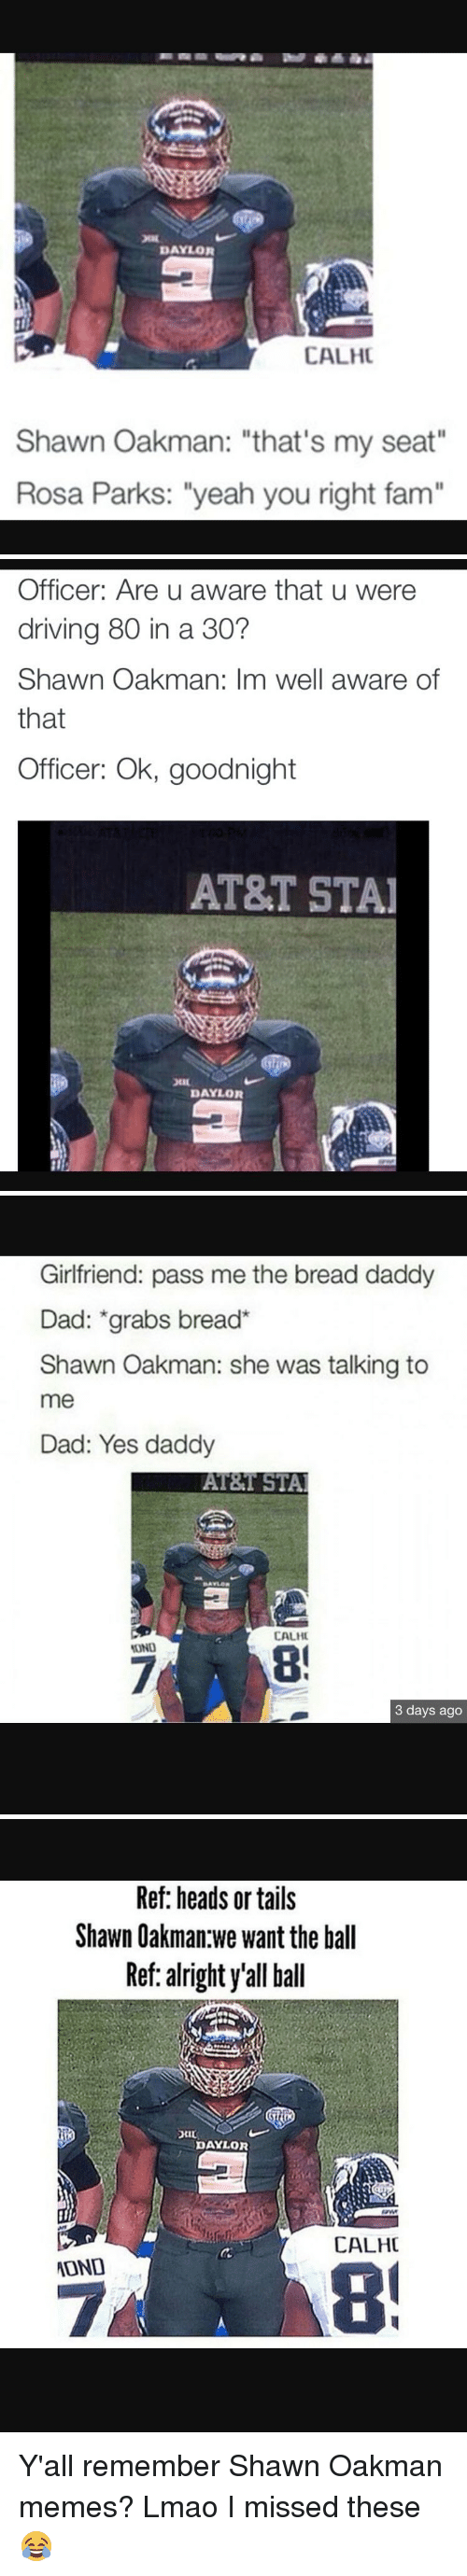 """Shawn Oakman: DAYLOR  CALHC  Shawn Oakman: """"that's my seat""""  Rosa Parks: """"yeah you right fam""""   Officer: Are u aware that u were  driving 80 in a 30?  Shawn Oakman: Im well aware of  that  Officer: Ok, goodnight  AT&T STAI  DAYLOR   Girlfriend: pass me the bread daddy  Dad: grabs bread  Shawn Oakman: she was talking to  me  Dad: Yes daddy  AT&T STAI  CALHI  OND  3 days ago   Ref: heads or tails  Shawn Oakman we want the ball  Ref: alright yall ball  DAYLOR  CALHC  ADND Y'all remember Shawn Oakman memes? Lmao I missed these 😂"""